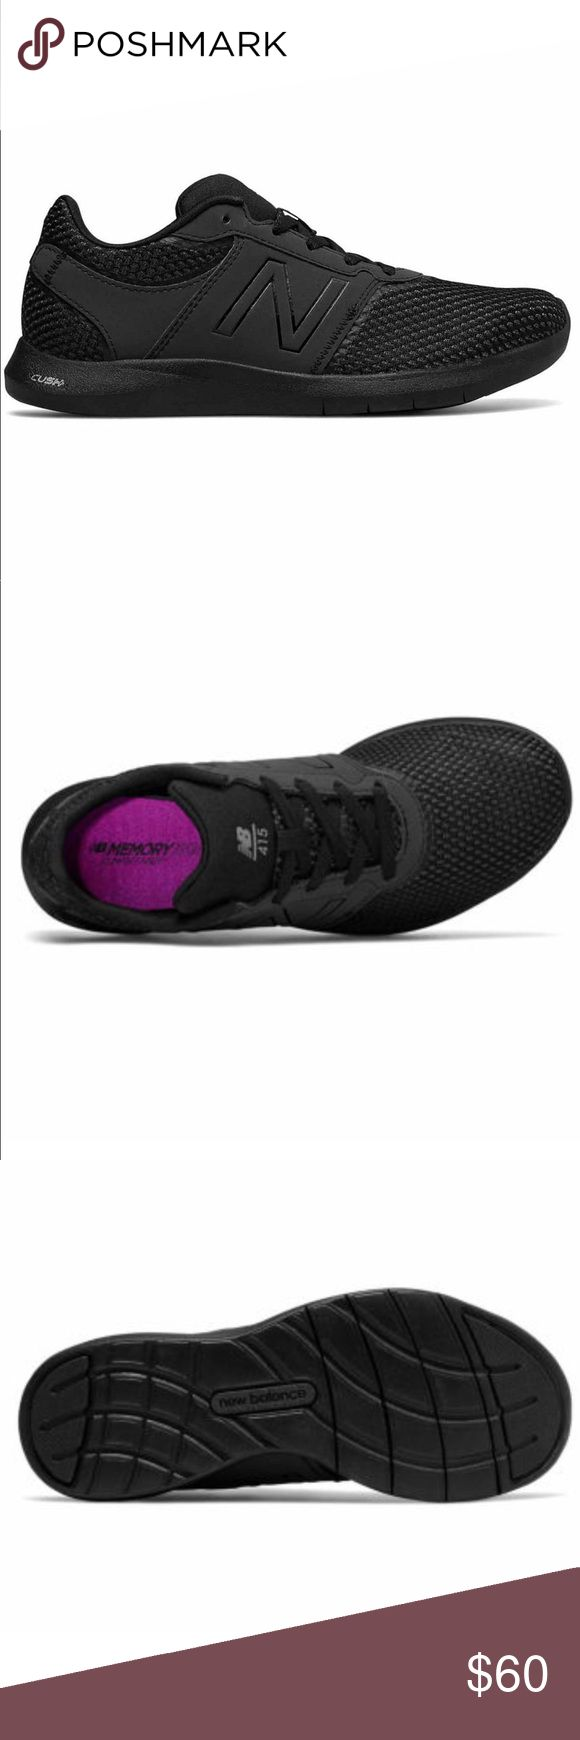 New Balance 415 women's working shoes 12 USA black Product Description Features: Cushioned, Comfort Sole Outer Surf Area: 100% Rubber Shoe Fasten: Lace-Up Upper Outer Surf Area: 100 Mesh Shoe Lining Material: Synthetic Footwear Technology: New Balance Cush+ , Cushioned, Comfort New Balance Shoes Athletic Shoes